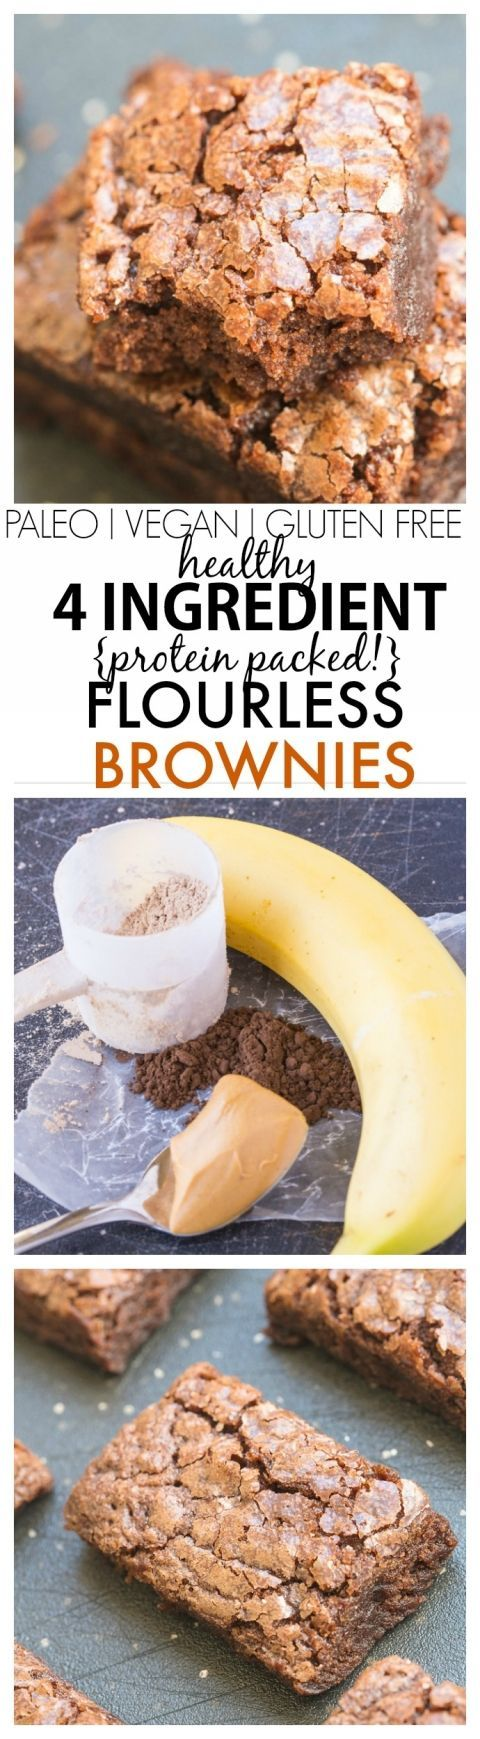 Four ingredient Flourless Protein Packed Brownies recipe- No butter oil or flour needed to make these rich dense subtly sweet brownies packed with protein- A quick and easy snack which DON'T taste healthy! {vegan gluten free refined sugar free paleo option}